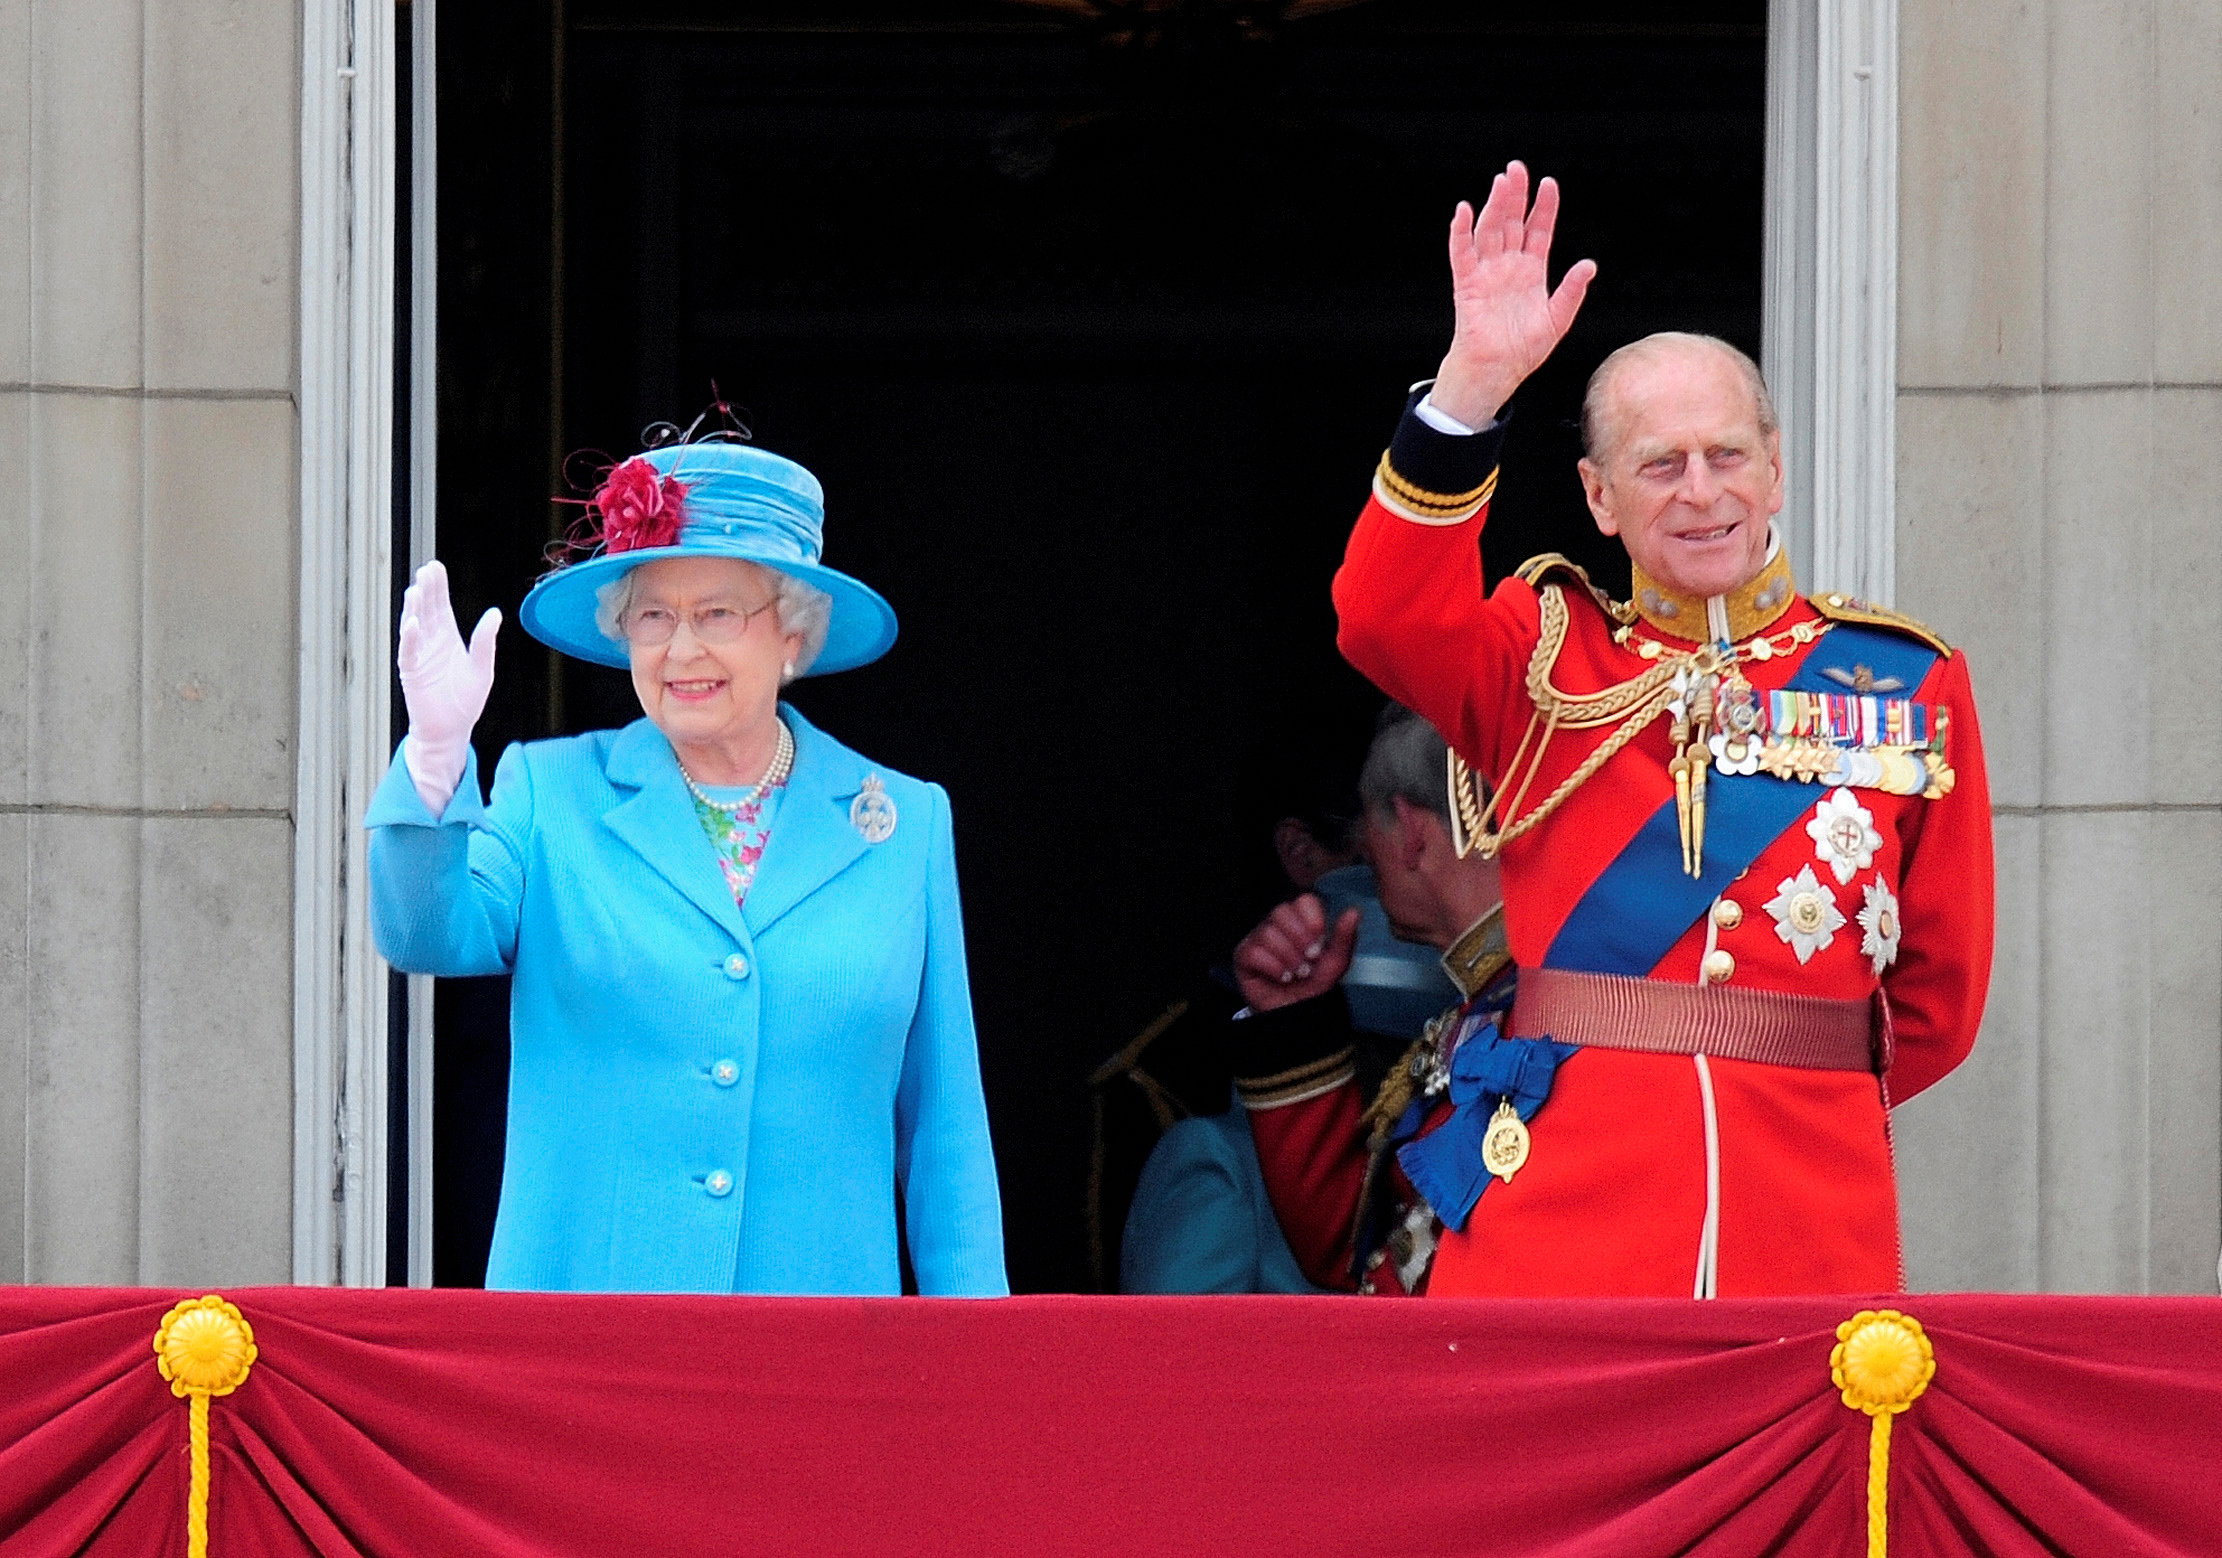 Britain's Queen Elizabeth and Prince Philip wave from the balcony of Buckingham Palace after attending the Trooping the Colour ceremony in London in this June 13, 2009 file photo. Photo: Reuters